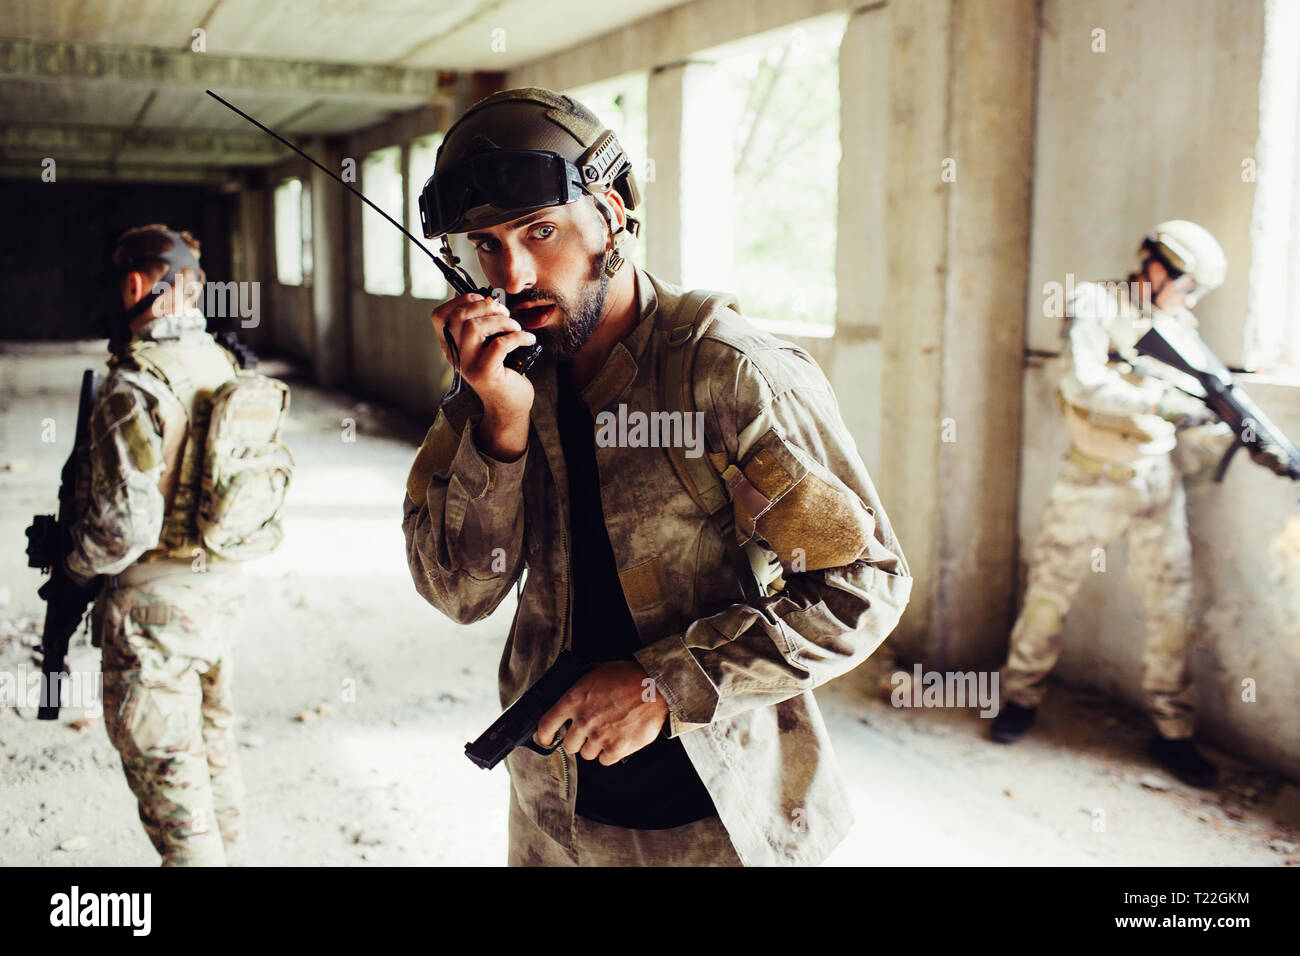 A pictur of guy standing in empty room with other warriors. He is holding gun and talking to portable radio. He is looking straight. Other guys are gu - Stock Image